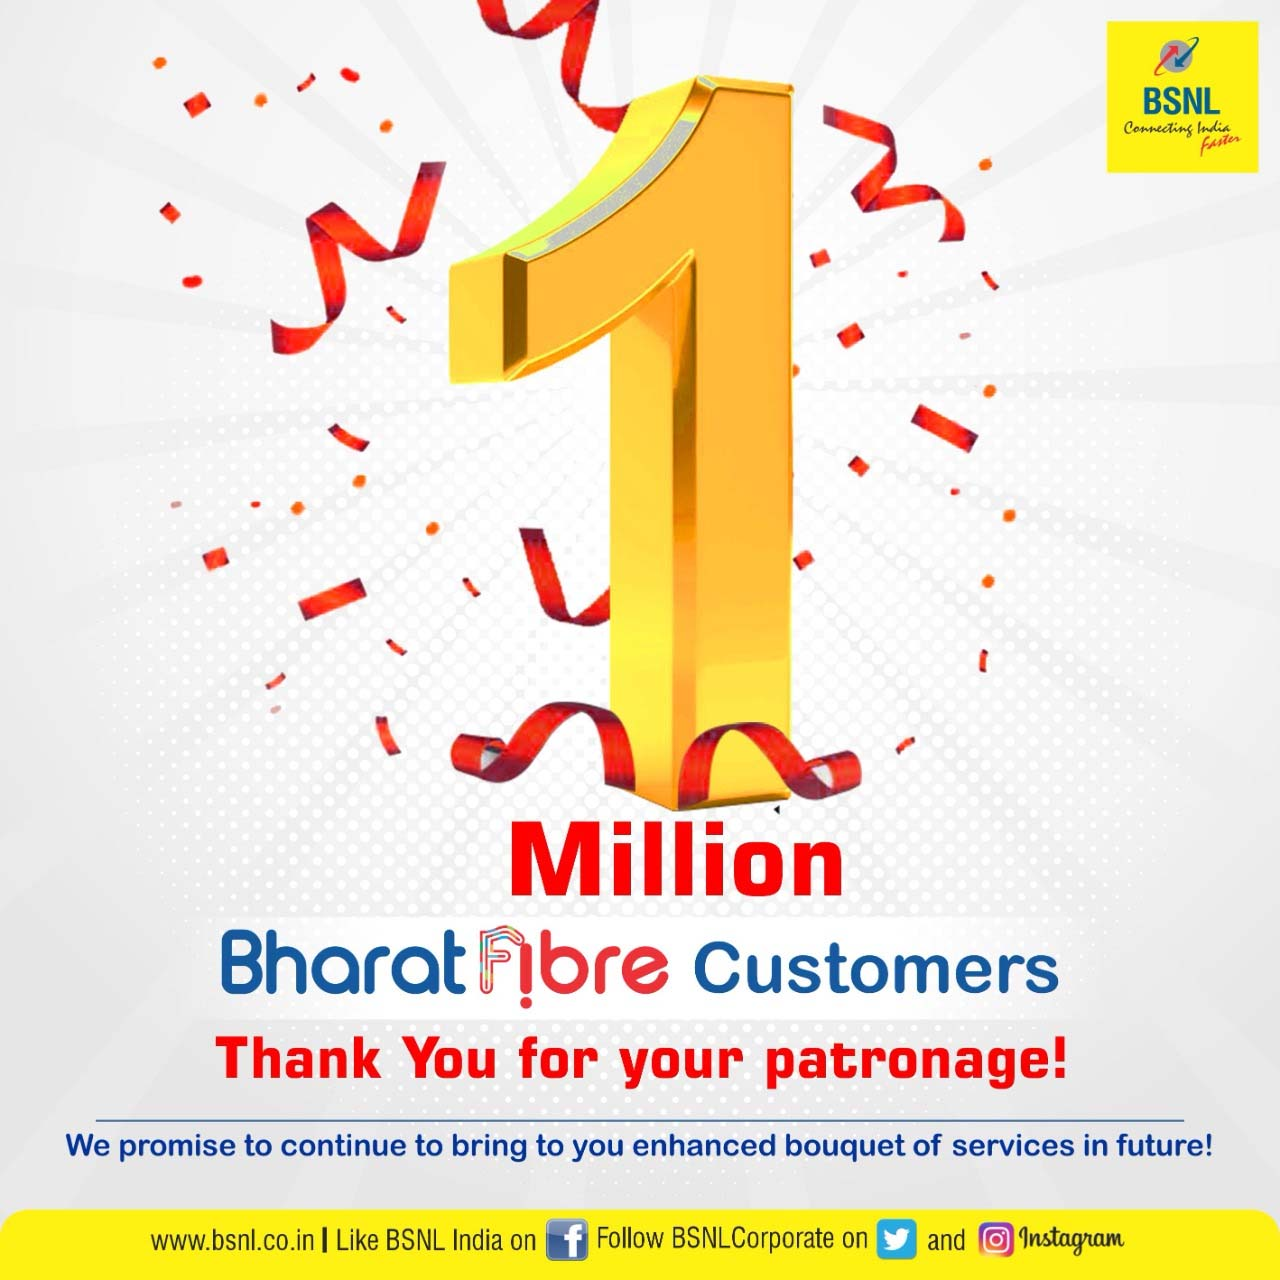 BSNL Bharat Fiber said to cross 1 million customers